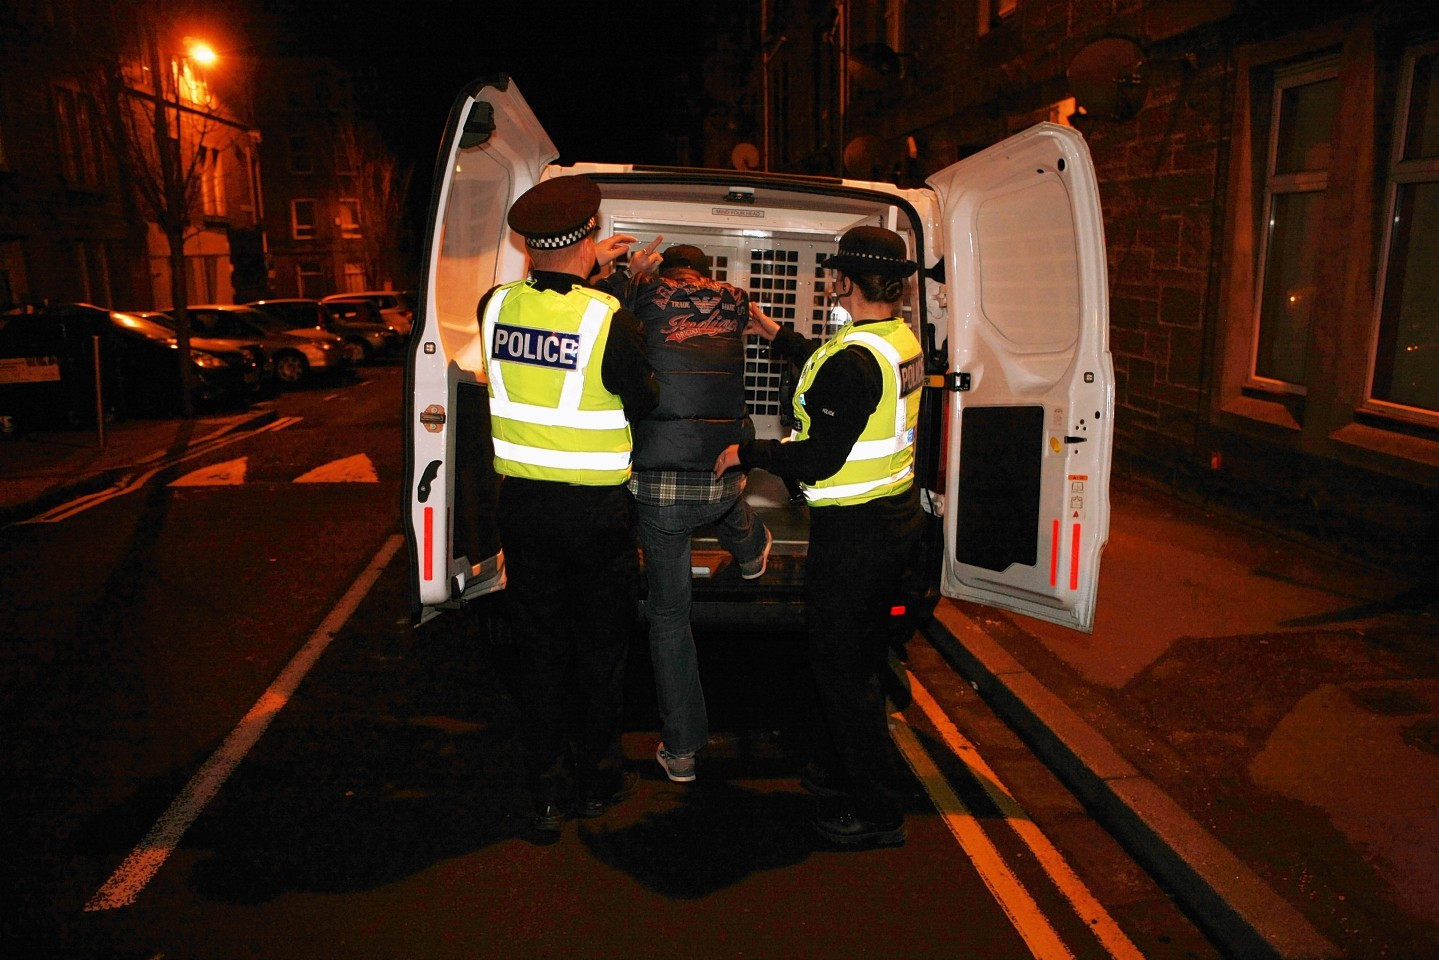 Police have made several arrests in the past week in relation to violence after the Dundee Utd v Aberdeen match